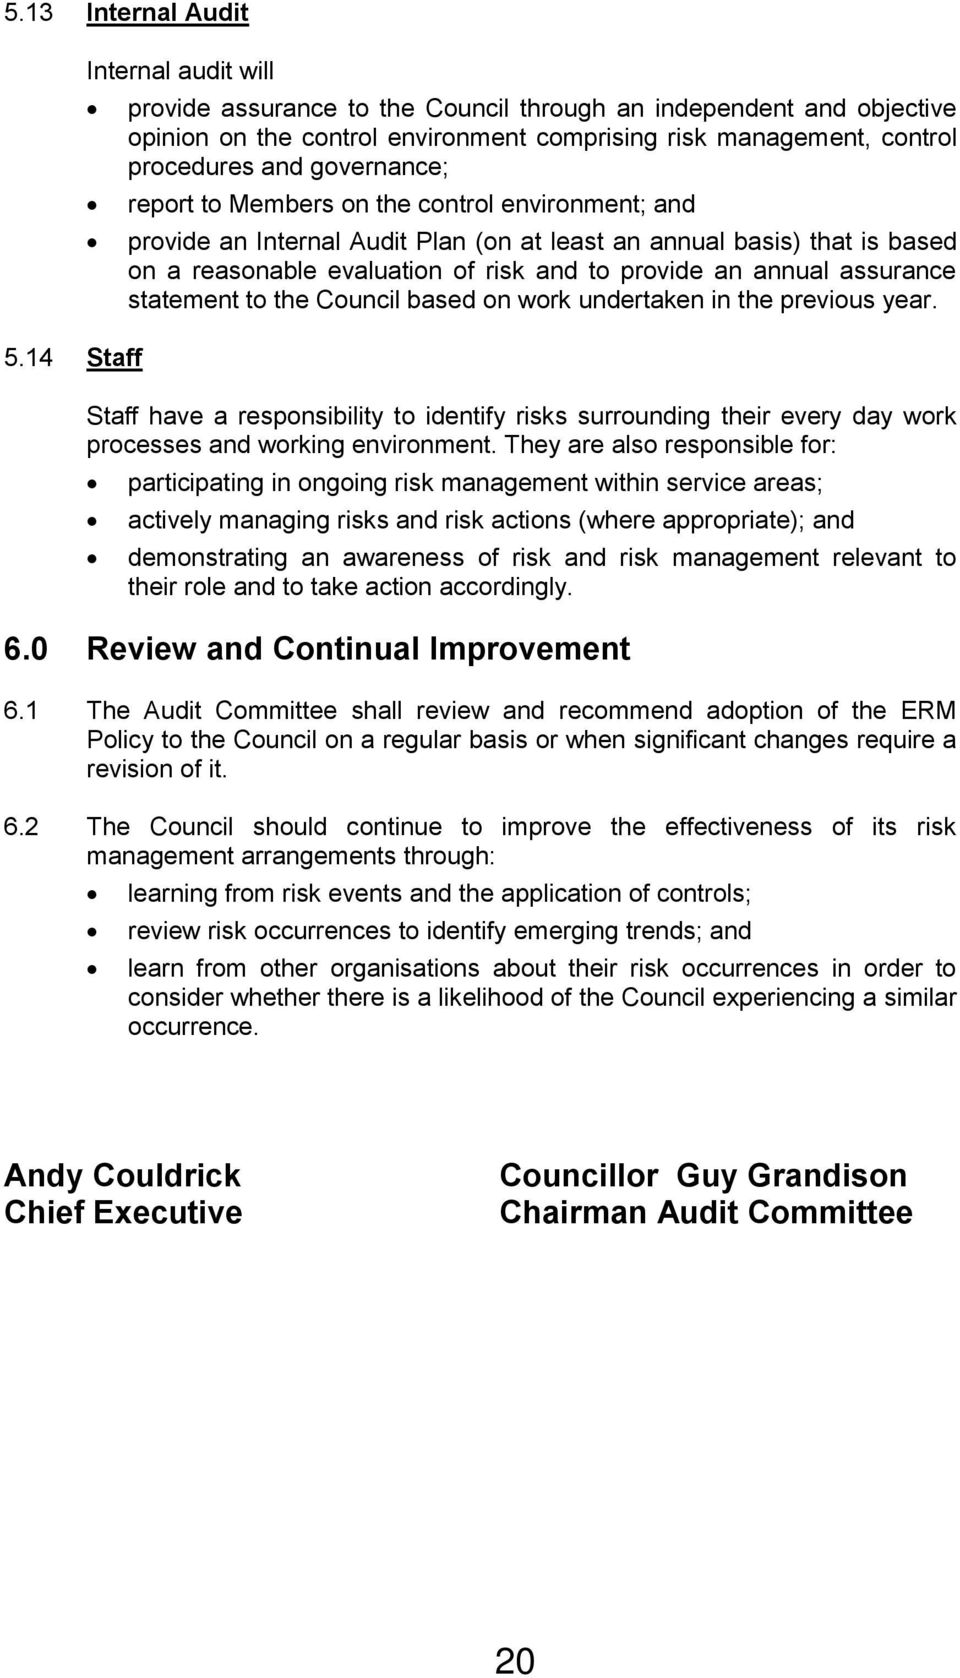 the control environment; and provide an Internal Audit Plan (on at least an annual basis) that is based on a reasonable evaluation of risk and to provide an annual assurance statement to the Council